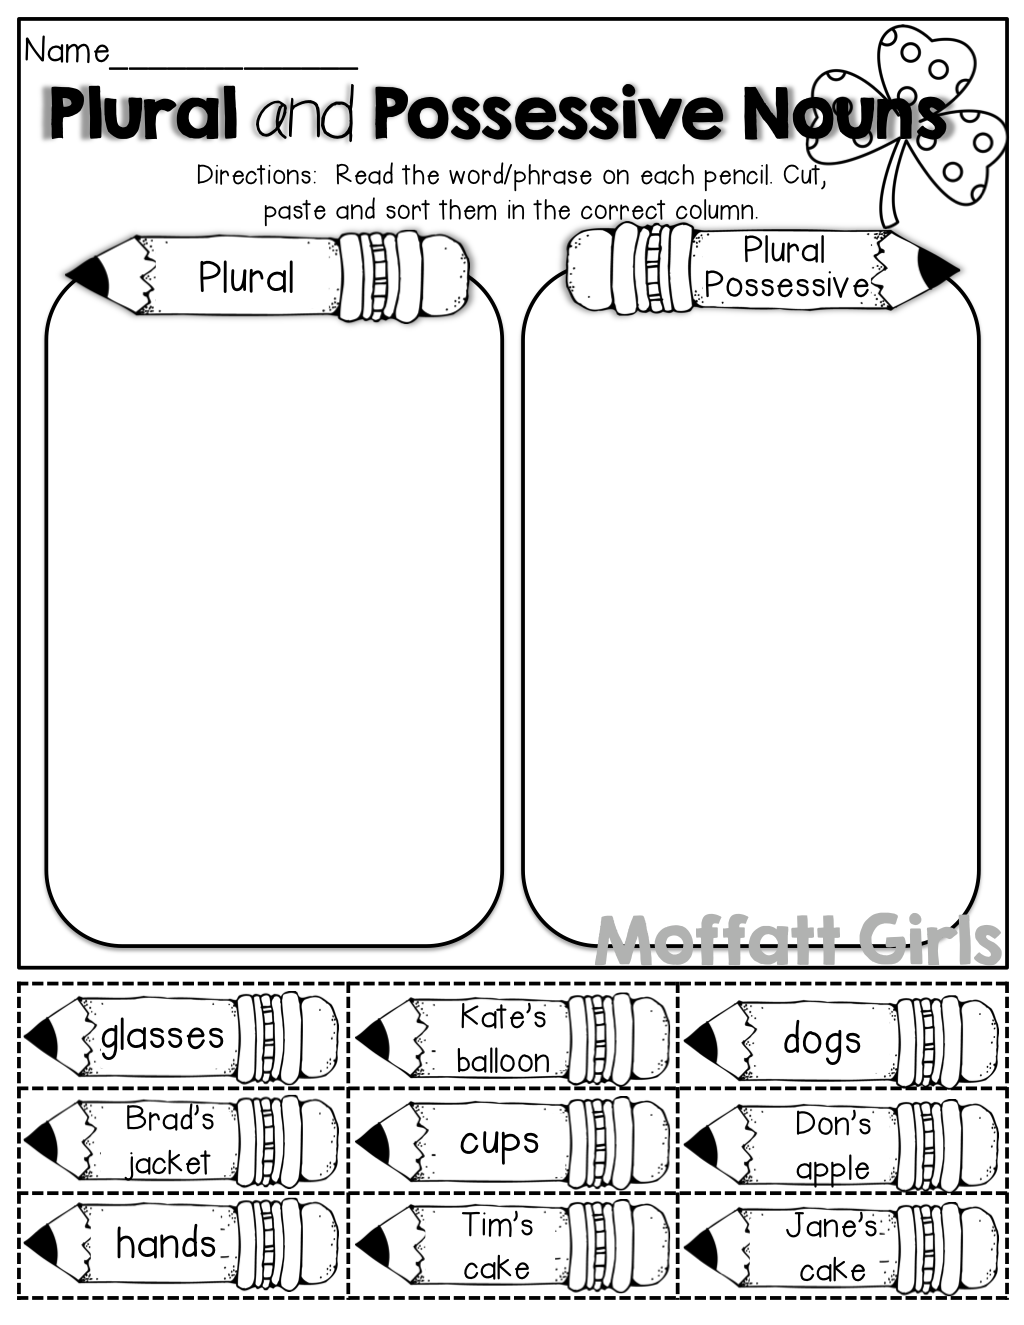 French 1 Possessive Nouns Worksheet   Printable Worksheets and Activities  for Teachers [ 1325 x 1024 Pixel ]